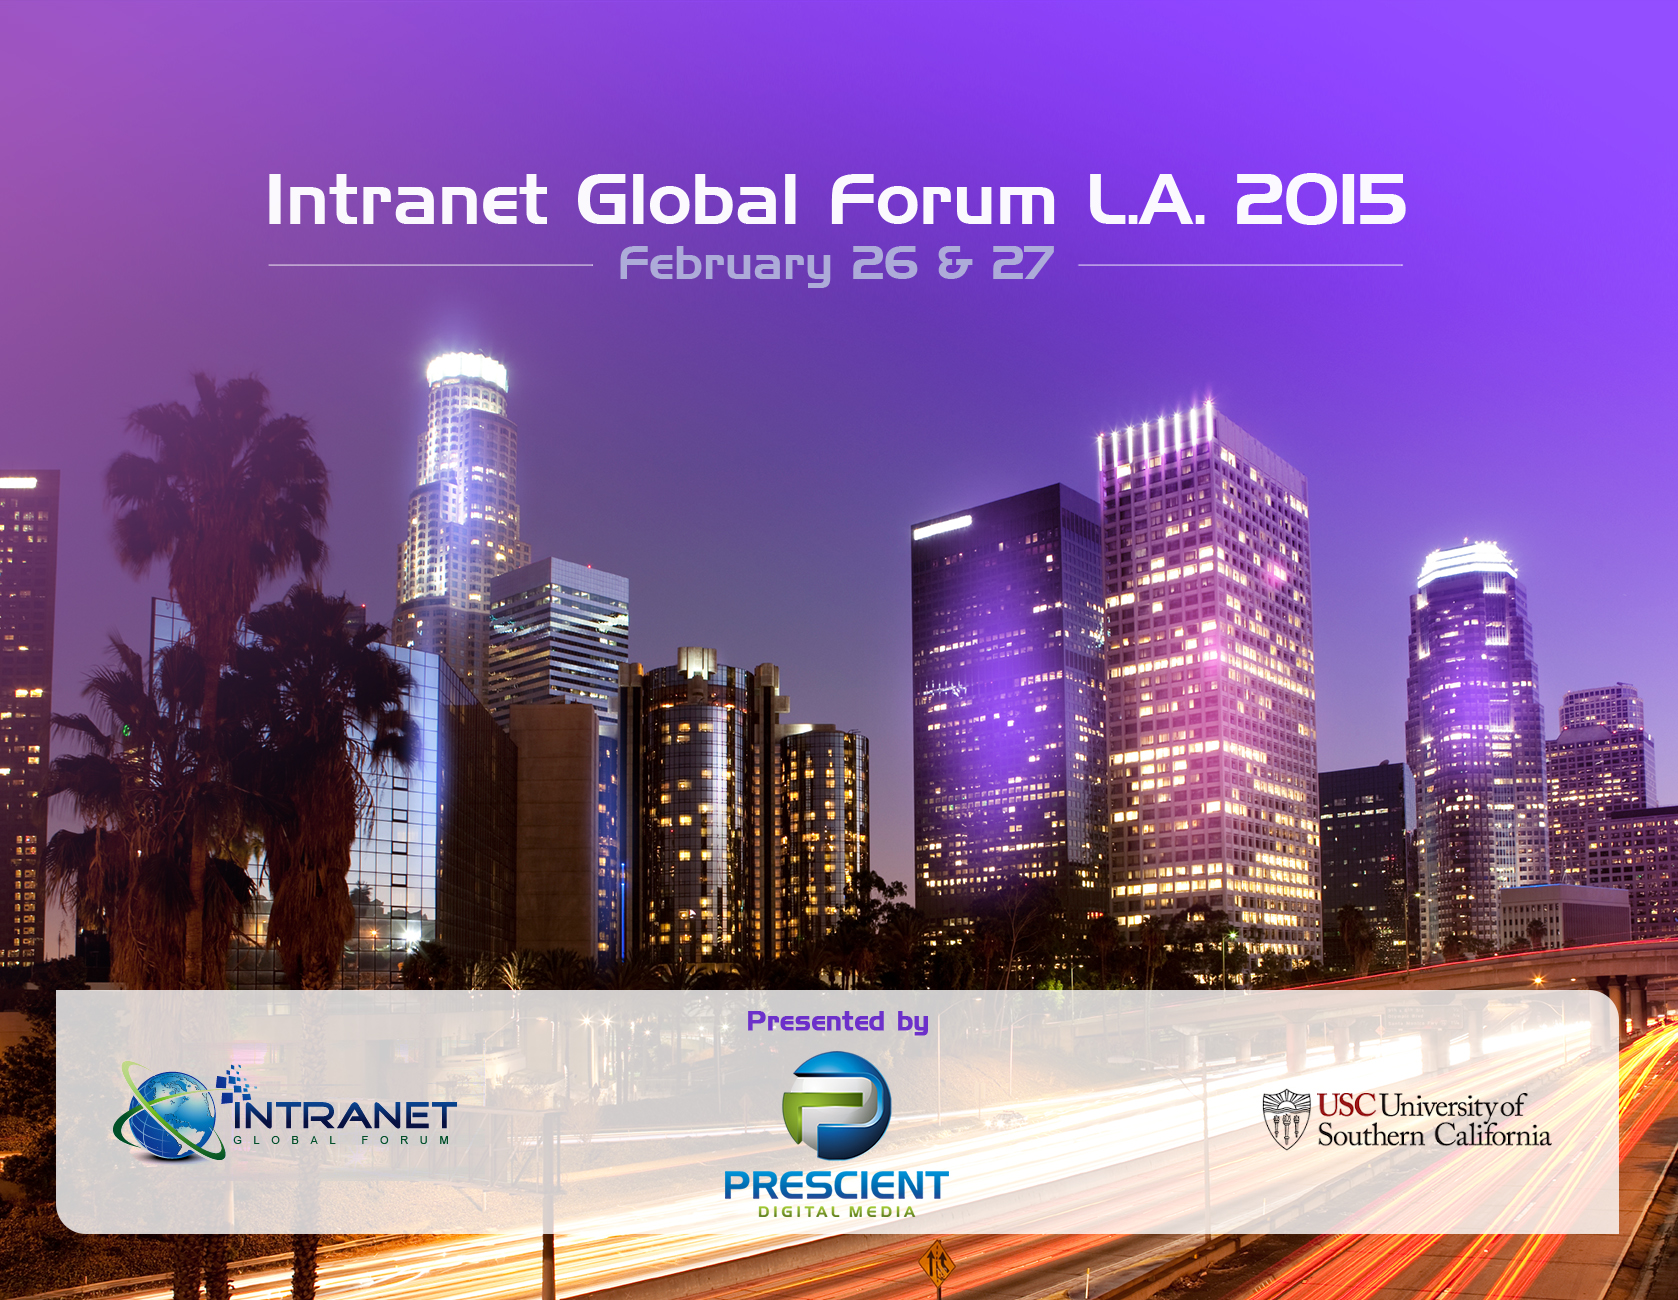 Our senior Internet and intranet consultants are recognized knowledge leaders and are often called on to share their knowledge at speaking engagements, including dozens of conference, seminar and webinar events across the globe every year.